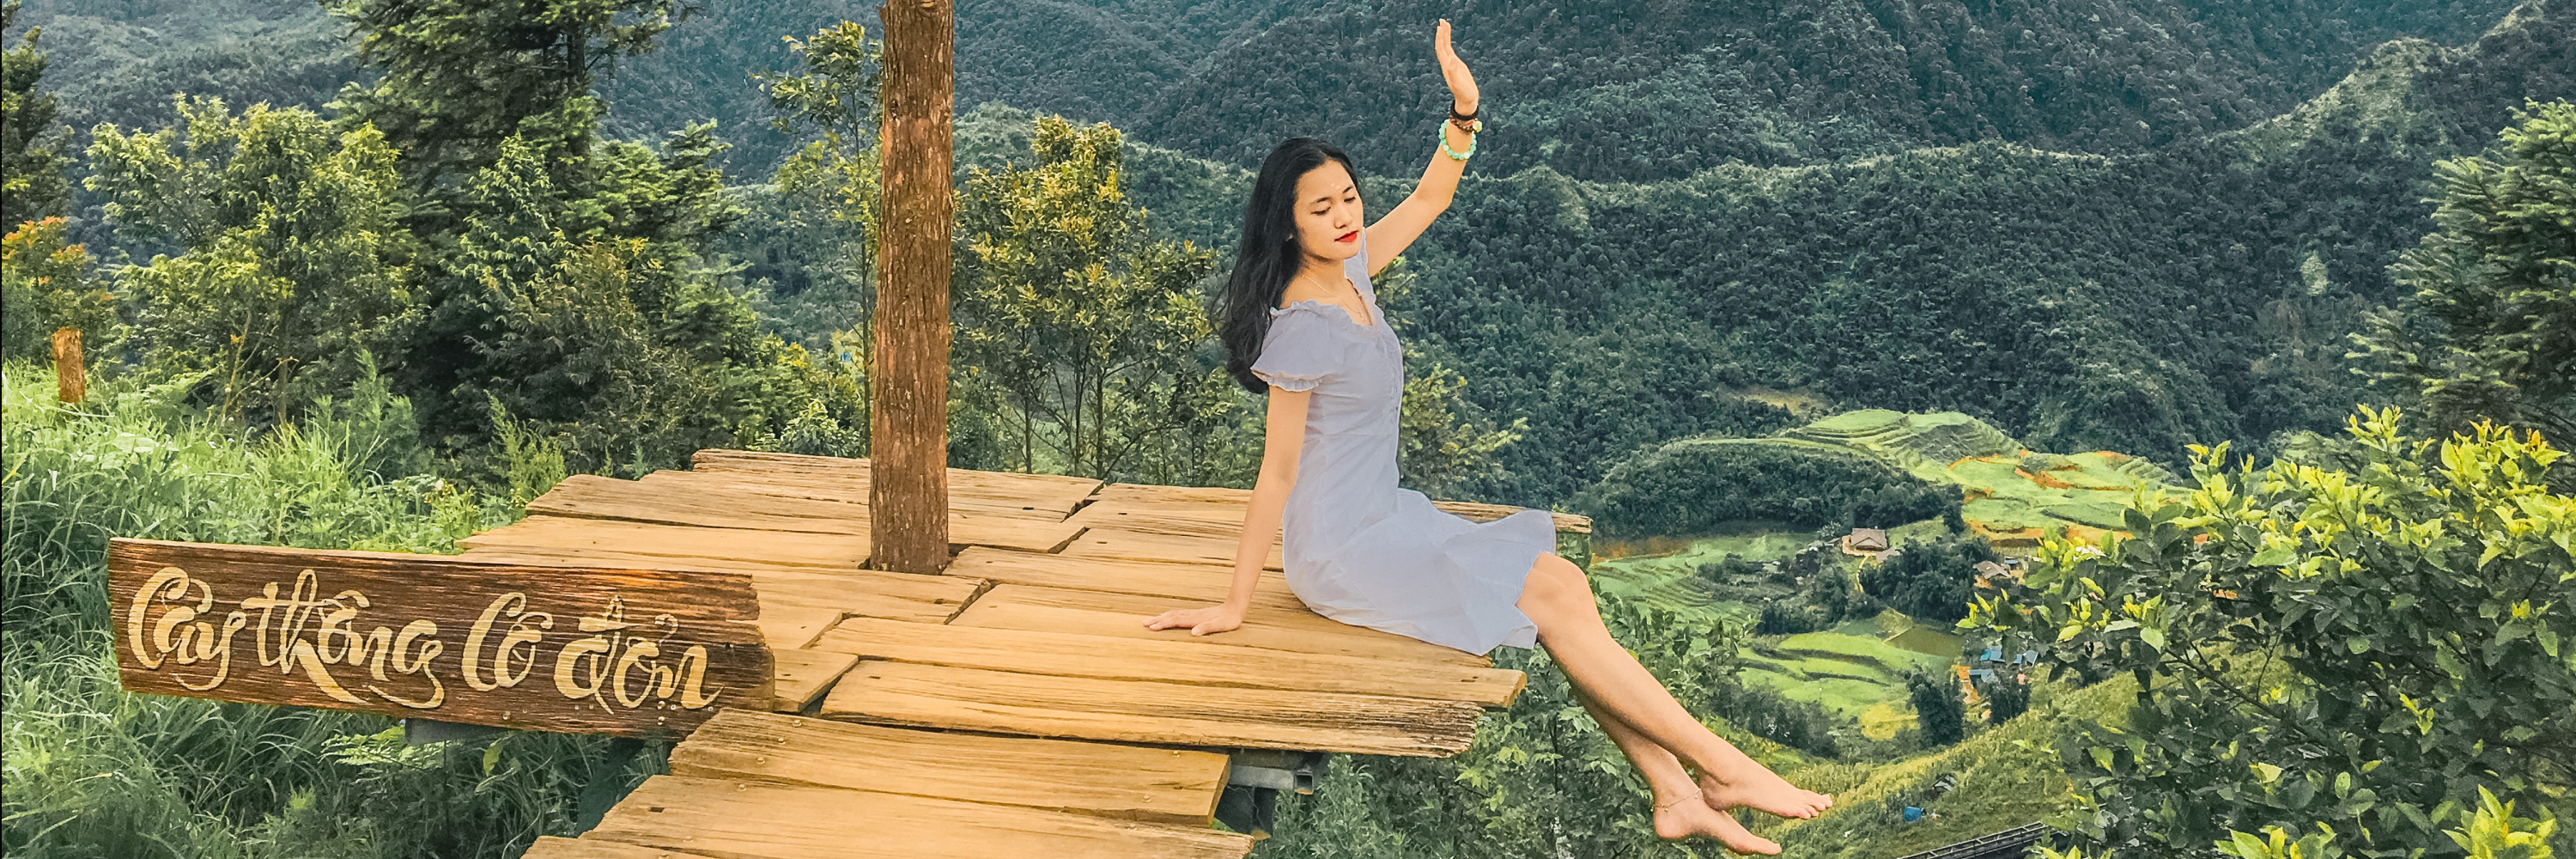 https://gody.vn/blog/dothithutrang30520037065/post/swing-sapa-7030